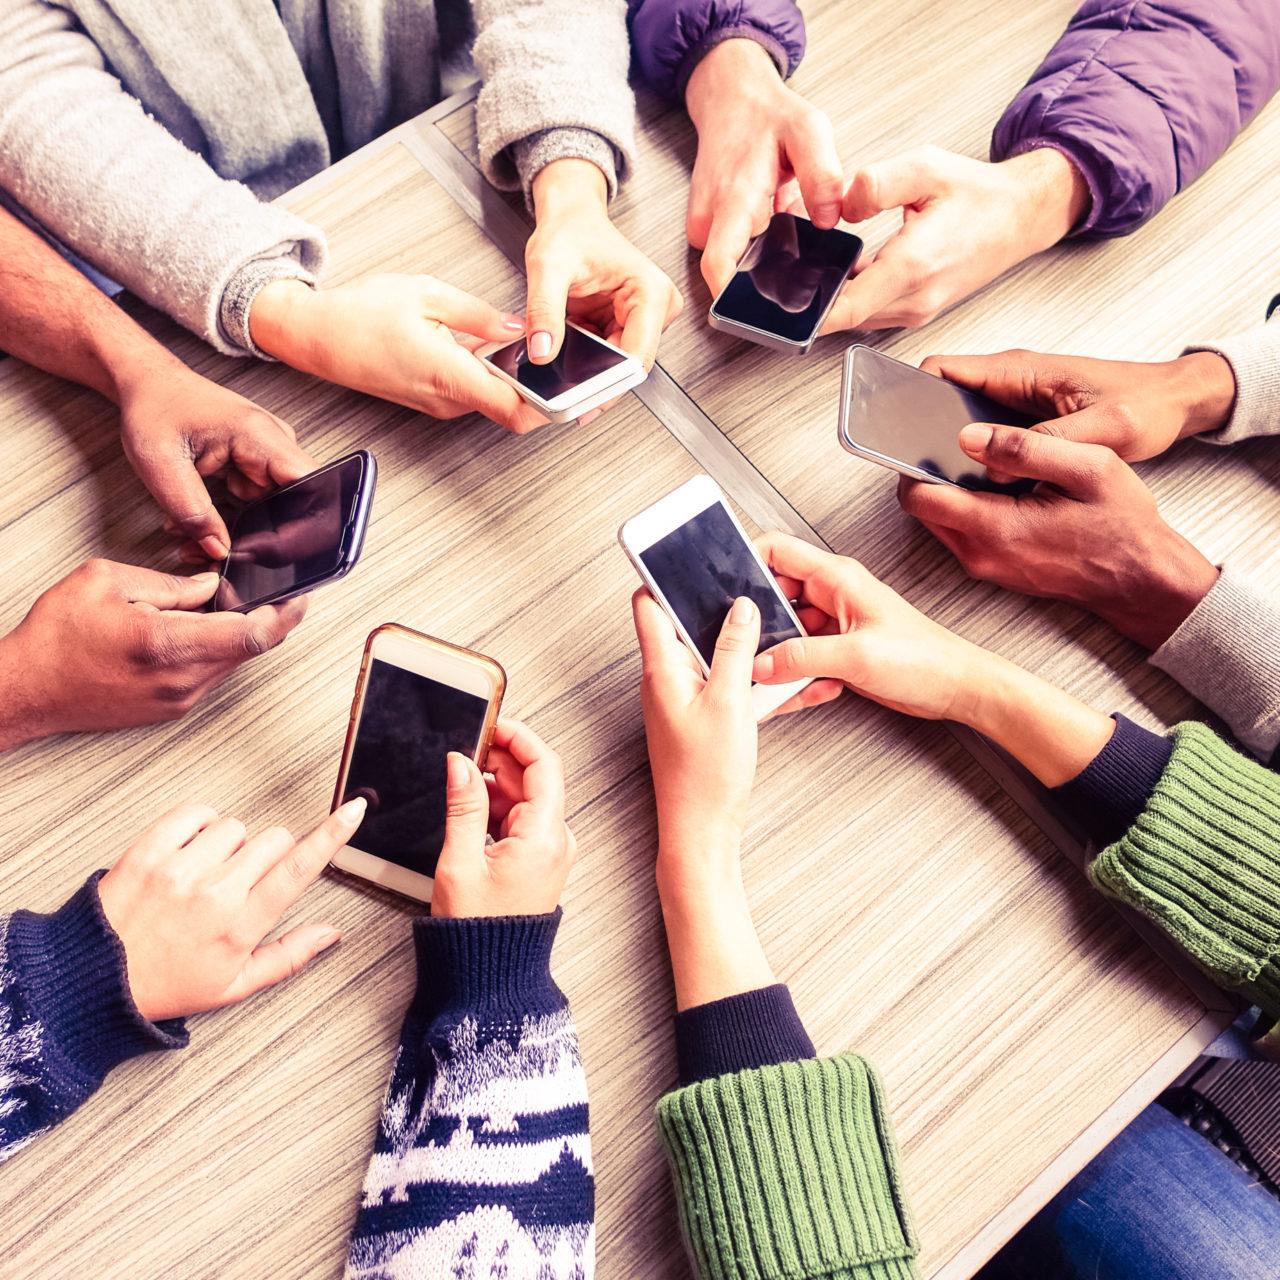 Digital detox time: The power of unplugging